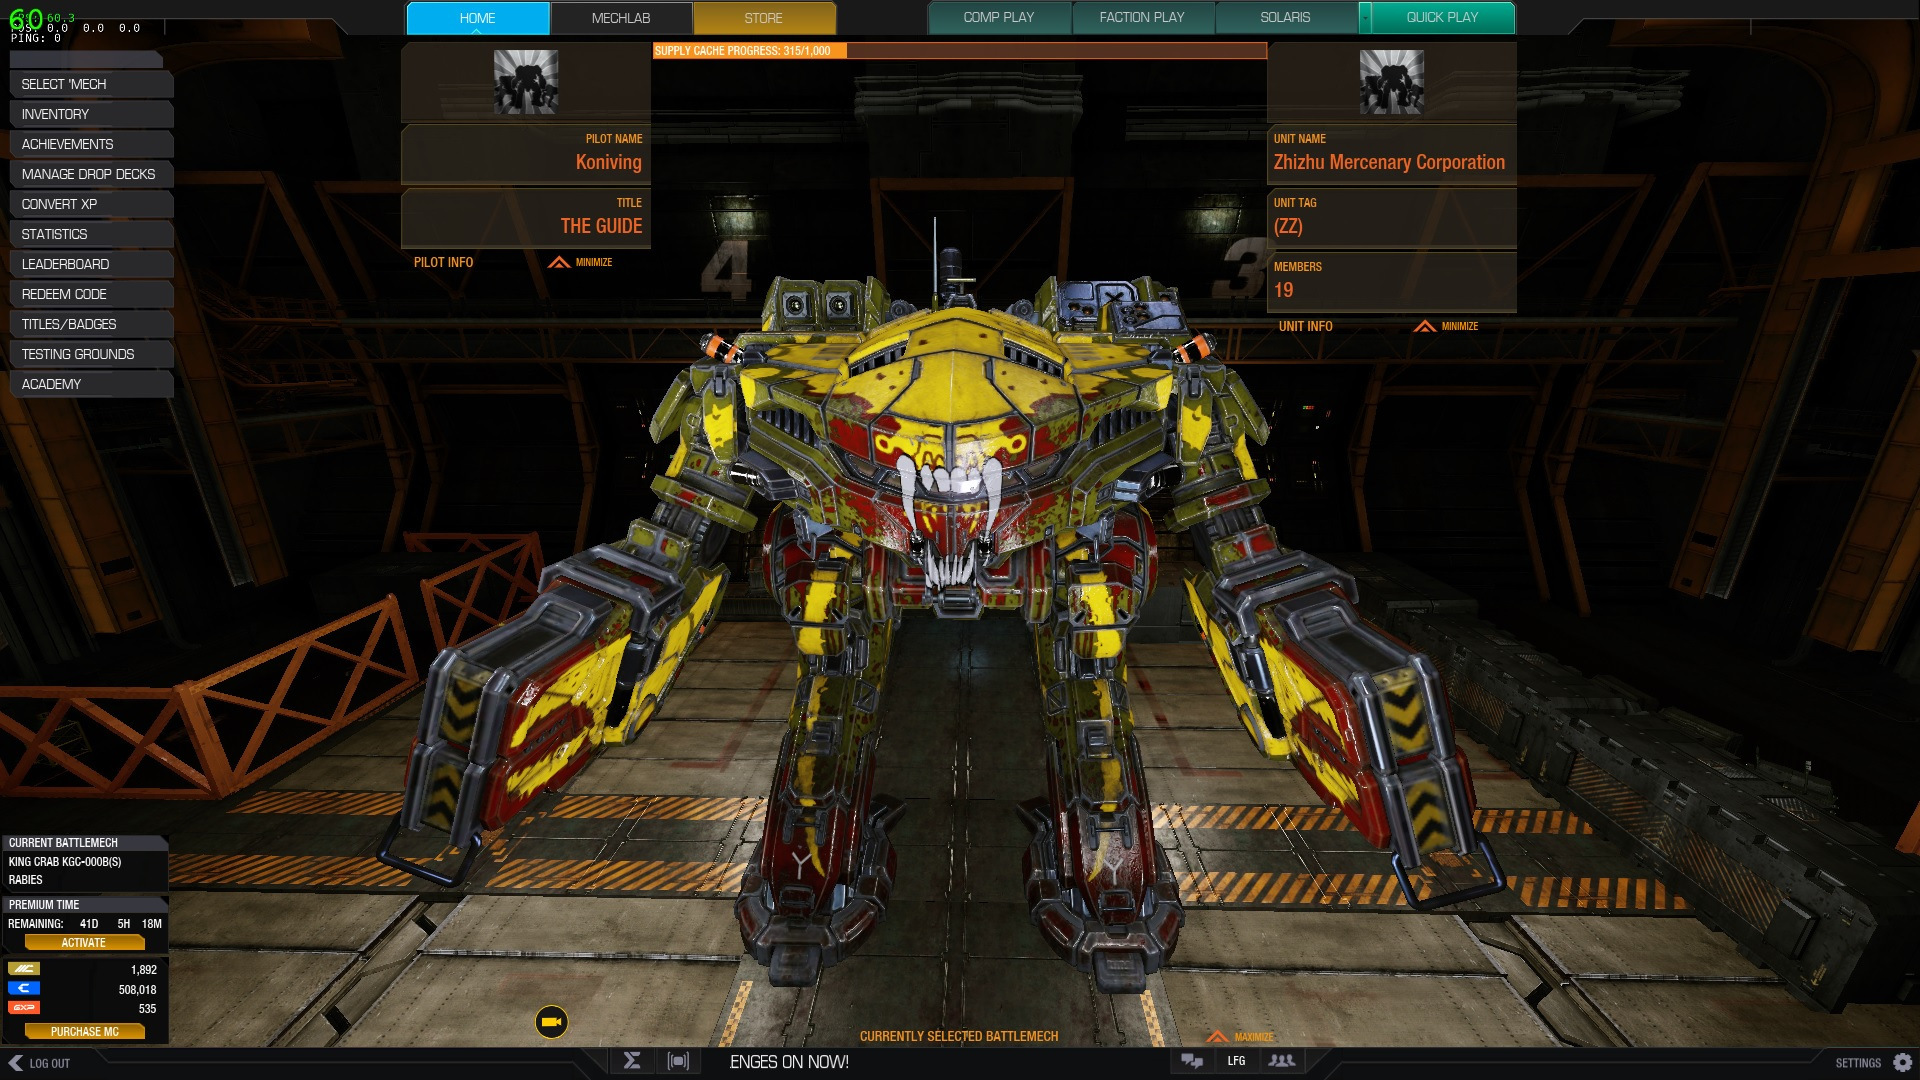 MWO: Forums - King Crab Nerfed To Cannon Fodder - Page 2